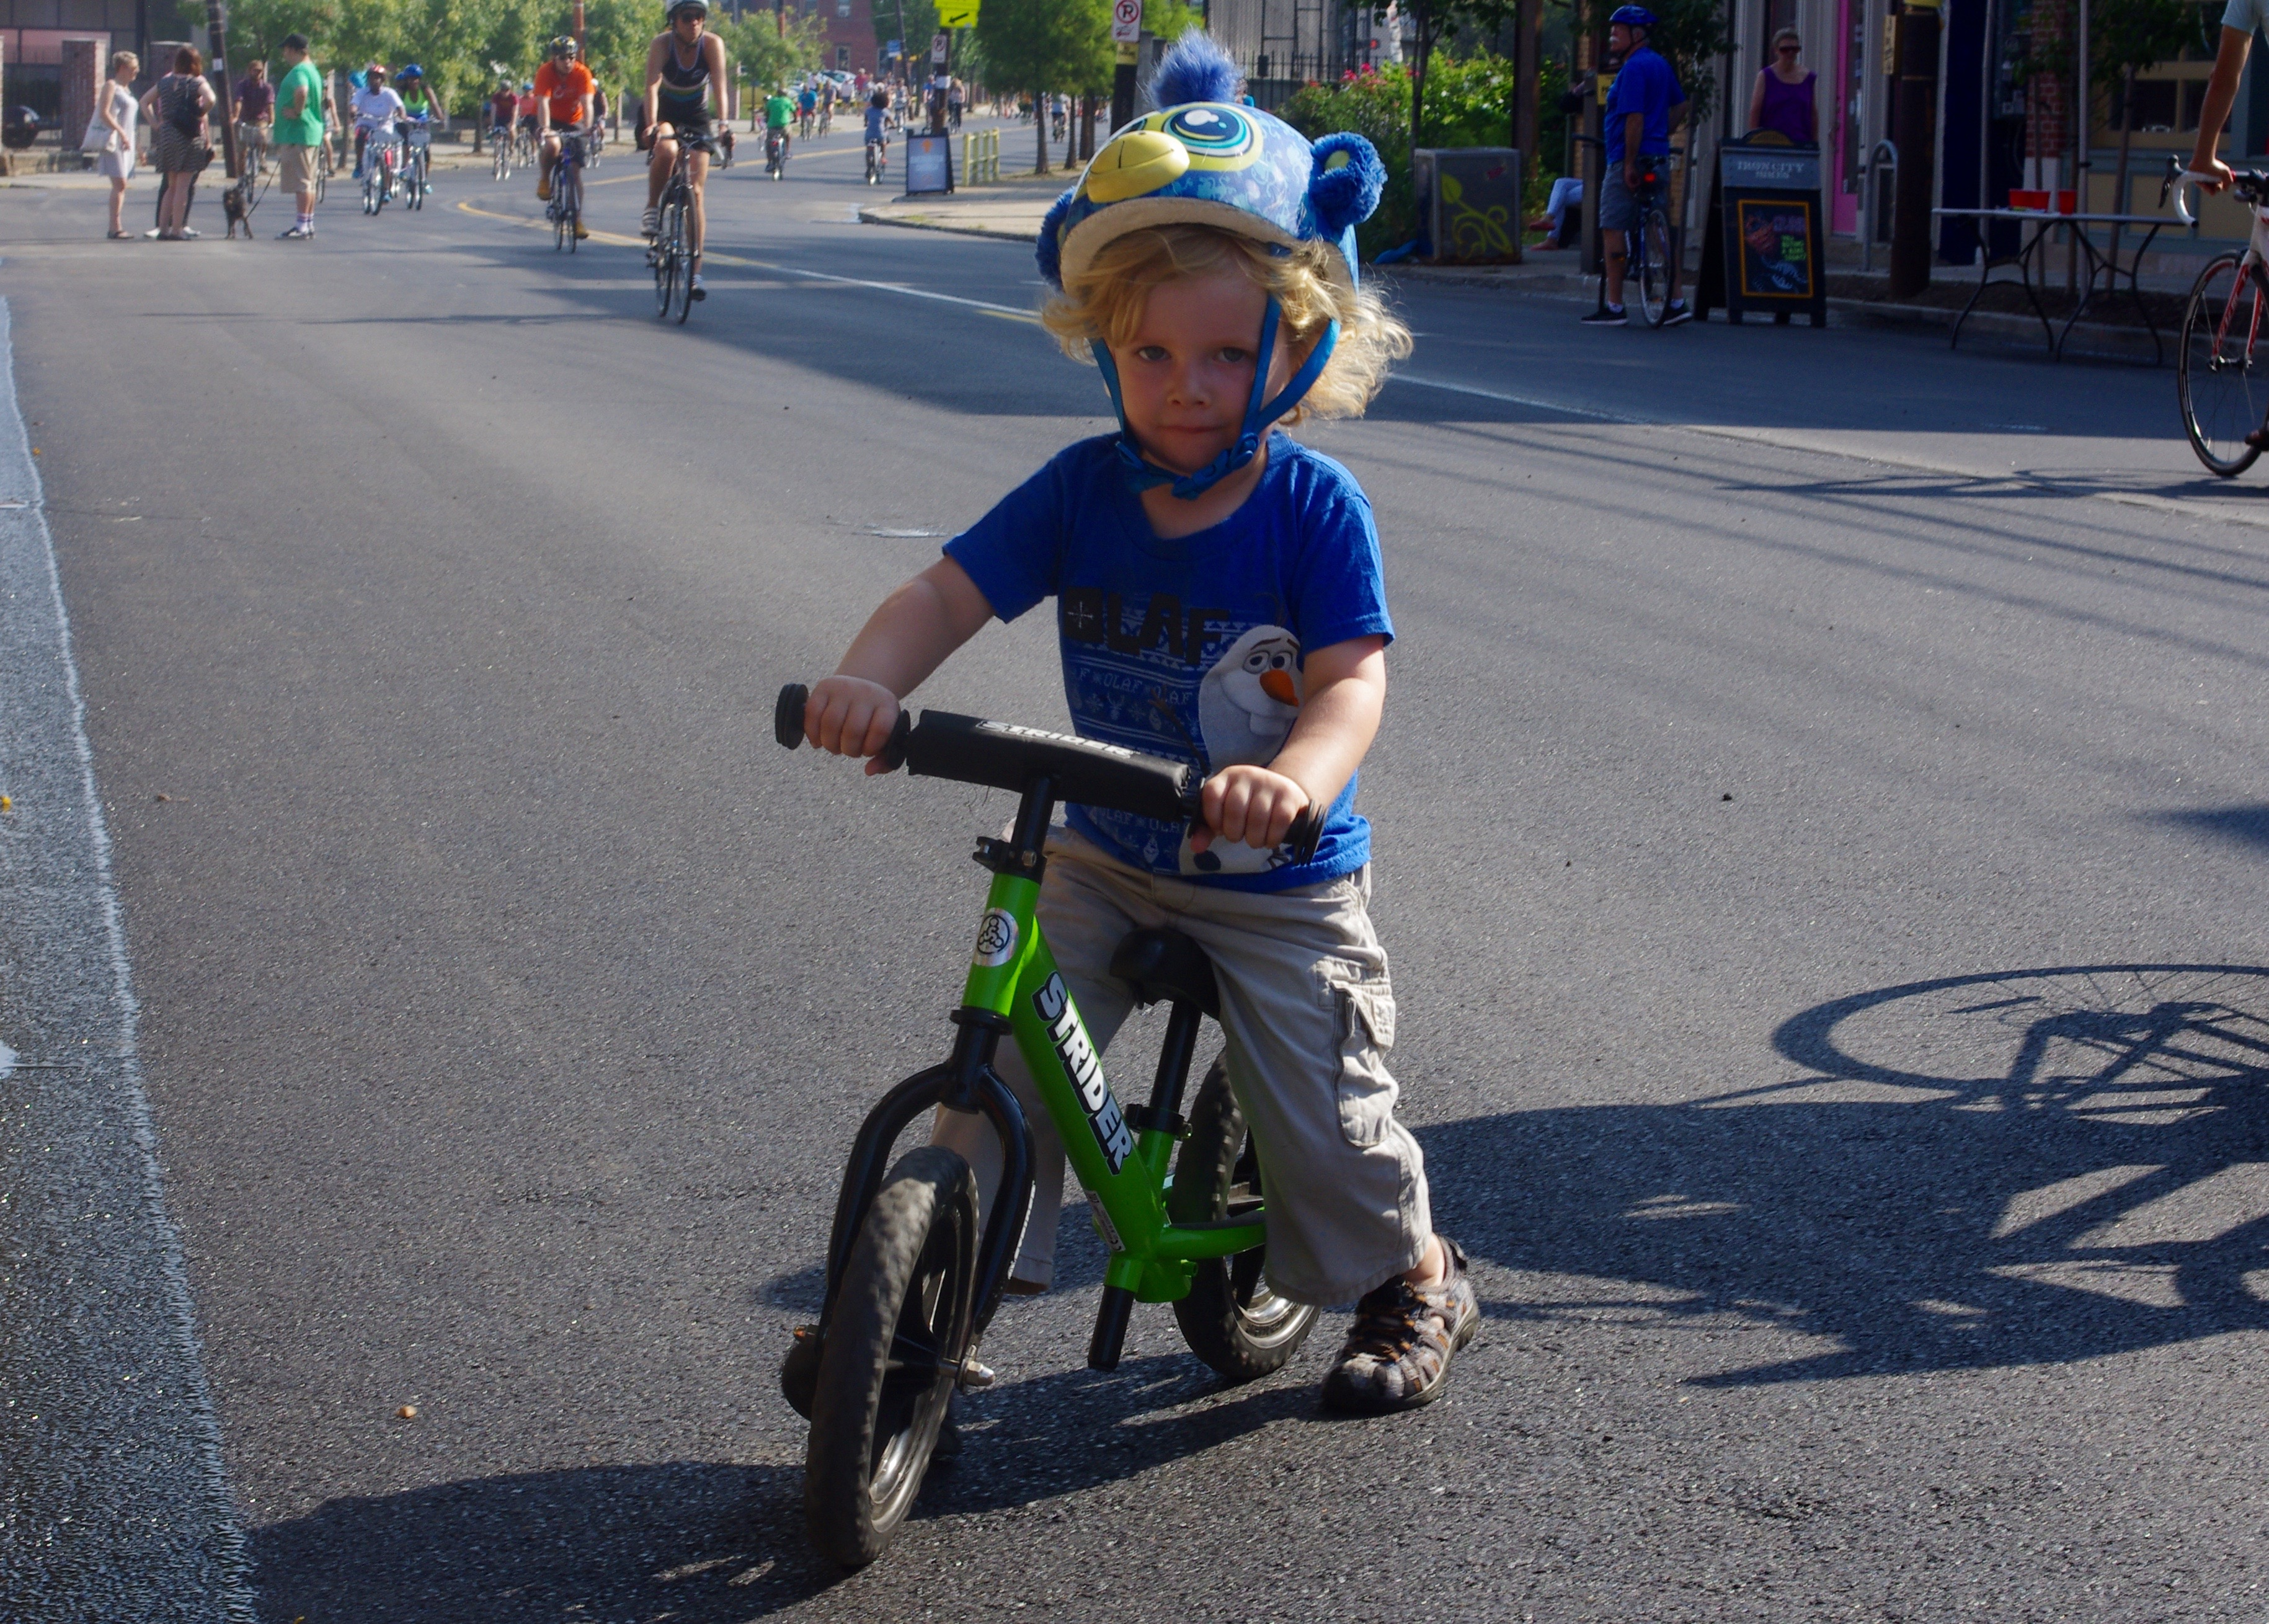 Three-year-old August Merriman-Preston is ready to ride on his Strider bike.